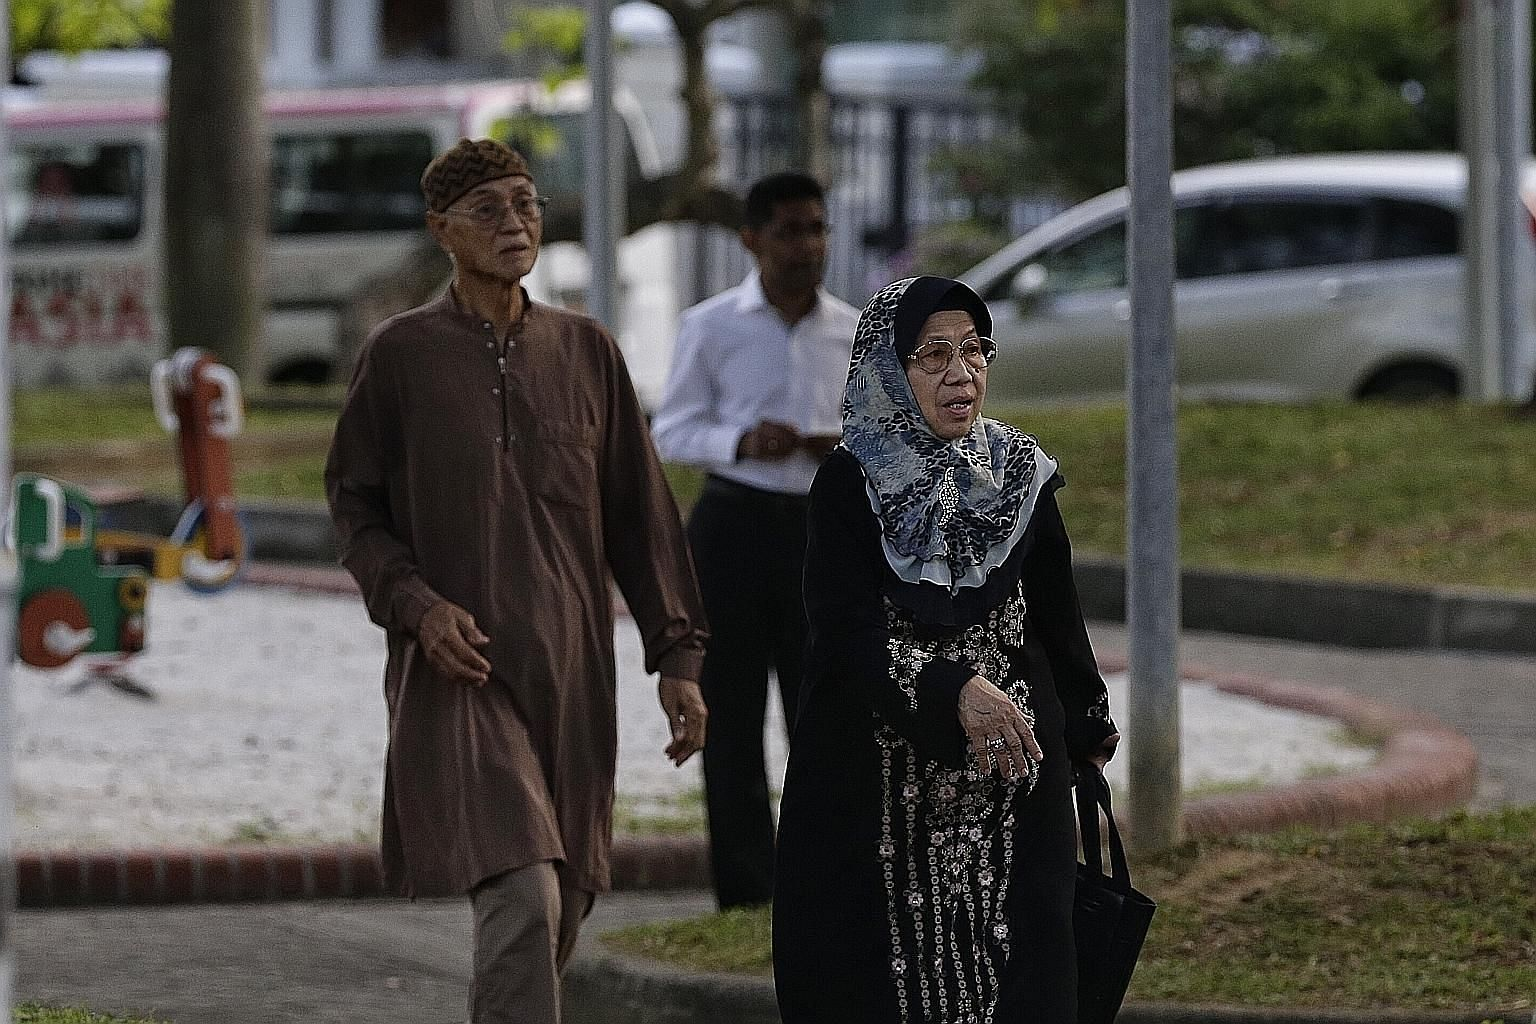 Mr Adanan Bakron and his wife Norsiah Suja'i were the first visitors to arrive at Mr Othman's home early yesterday morning to pay respects to their former neighbour and long-time friend.